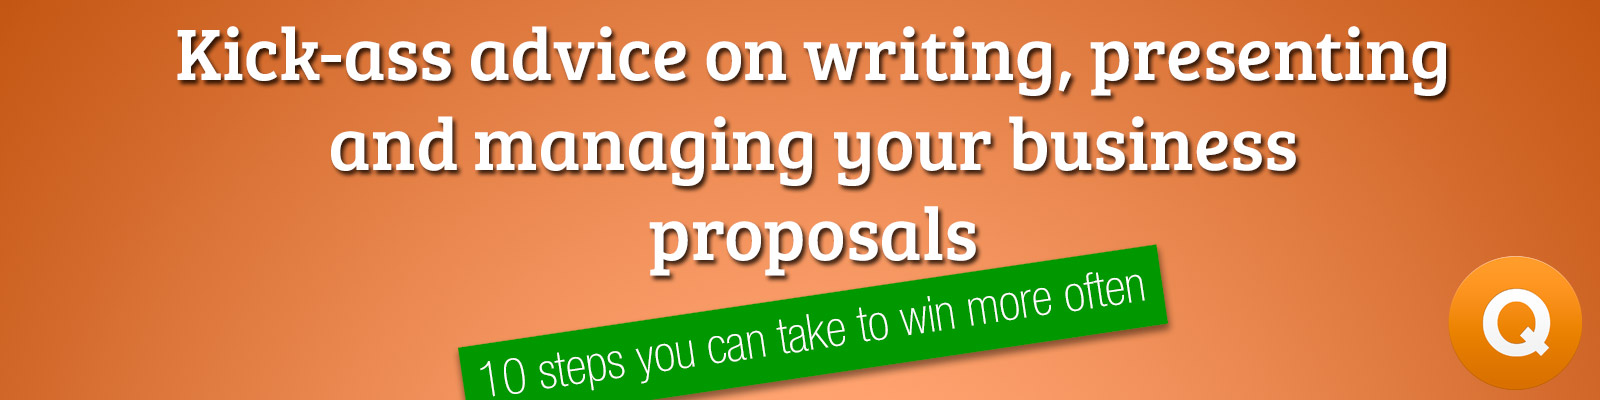 Business proposal writing guide